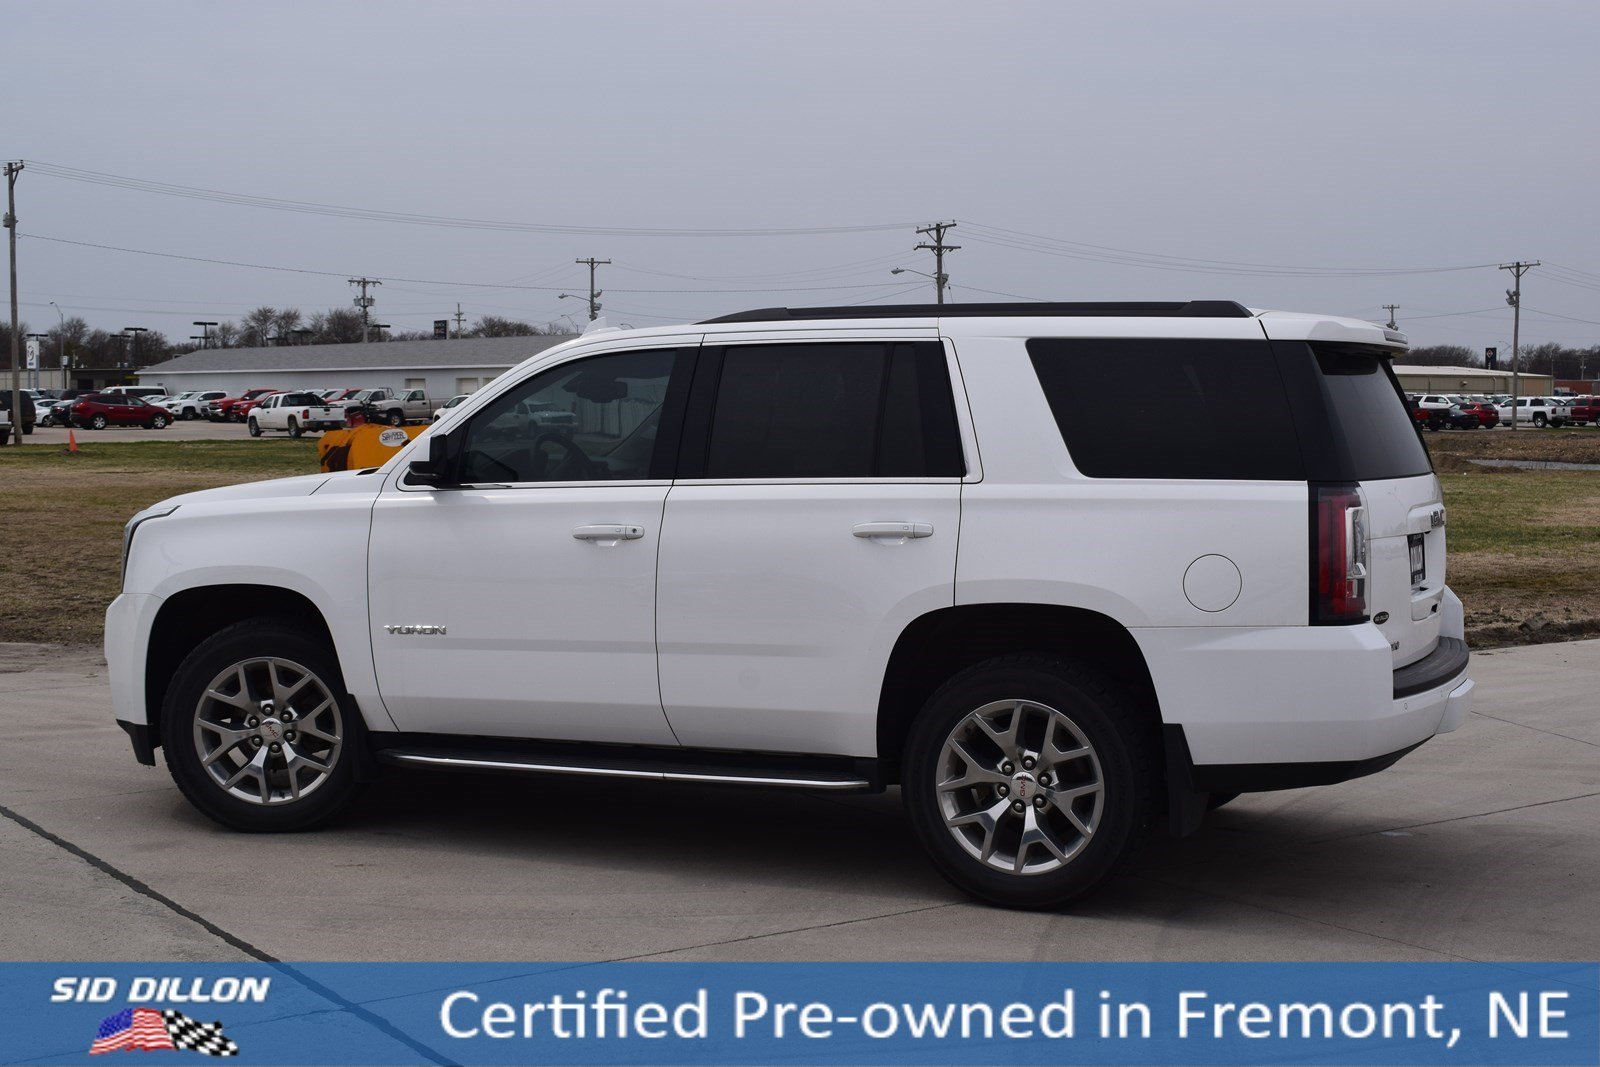 Certified Pre Owned 2017 Gmc Yukon Slt Suv In Fremont 1t3048g Sid Dillon Auto Group